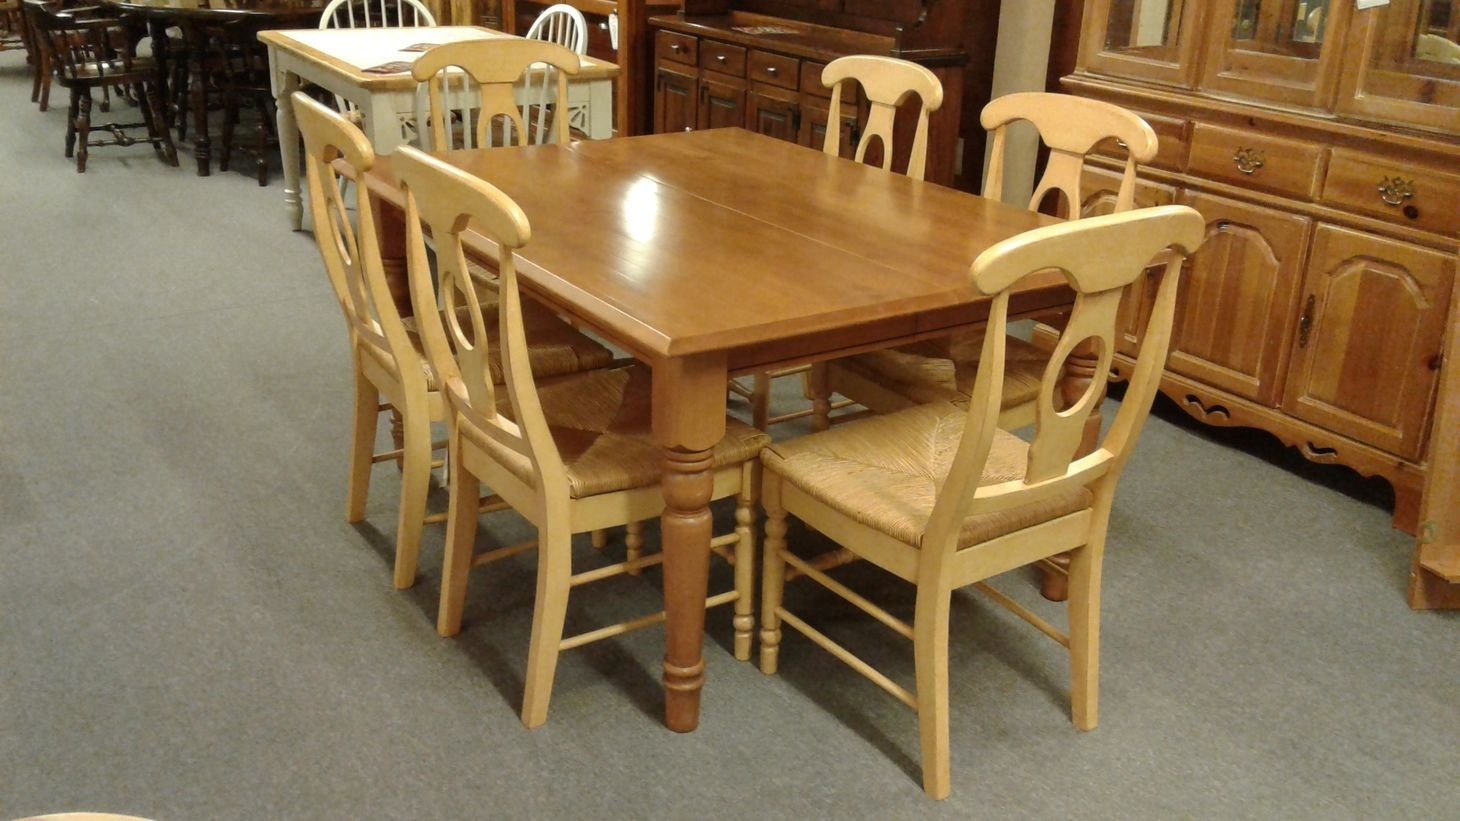 Alder Wood Table 6 Chairs Delmarva Furniture Consignment